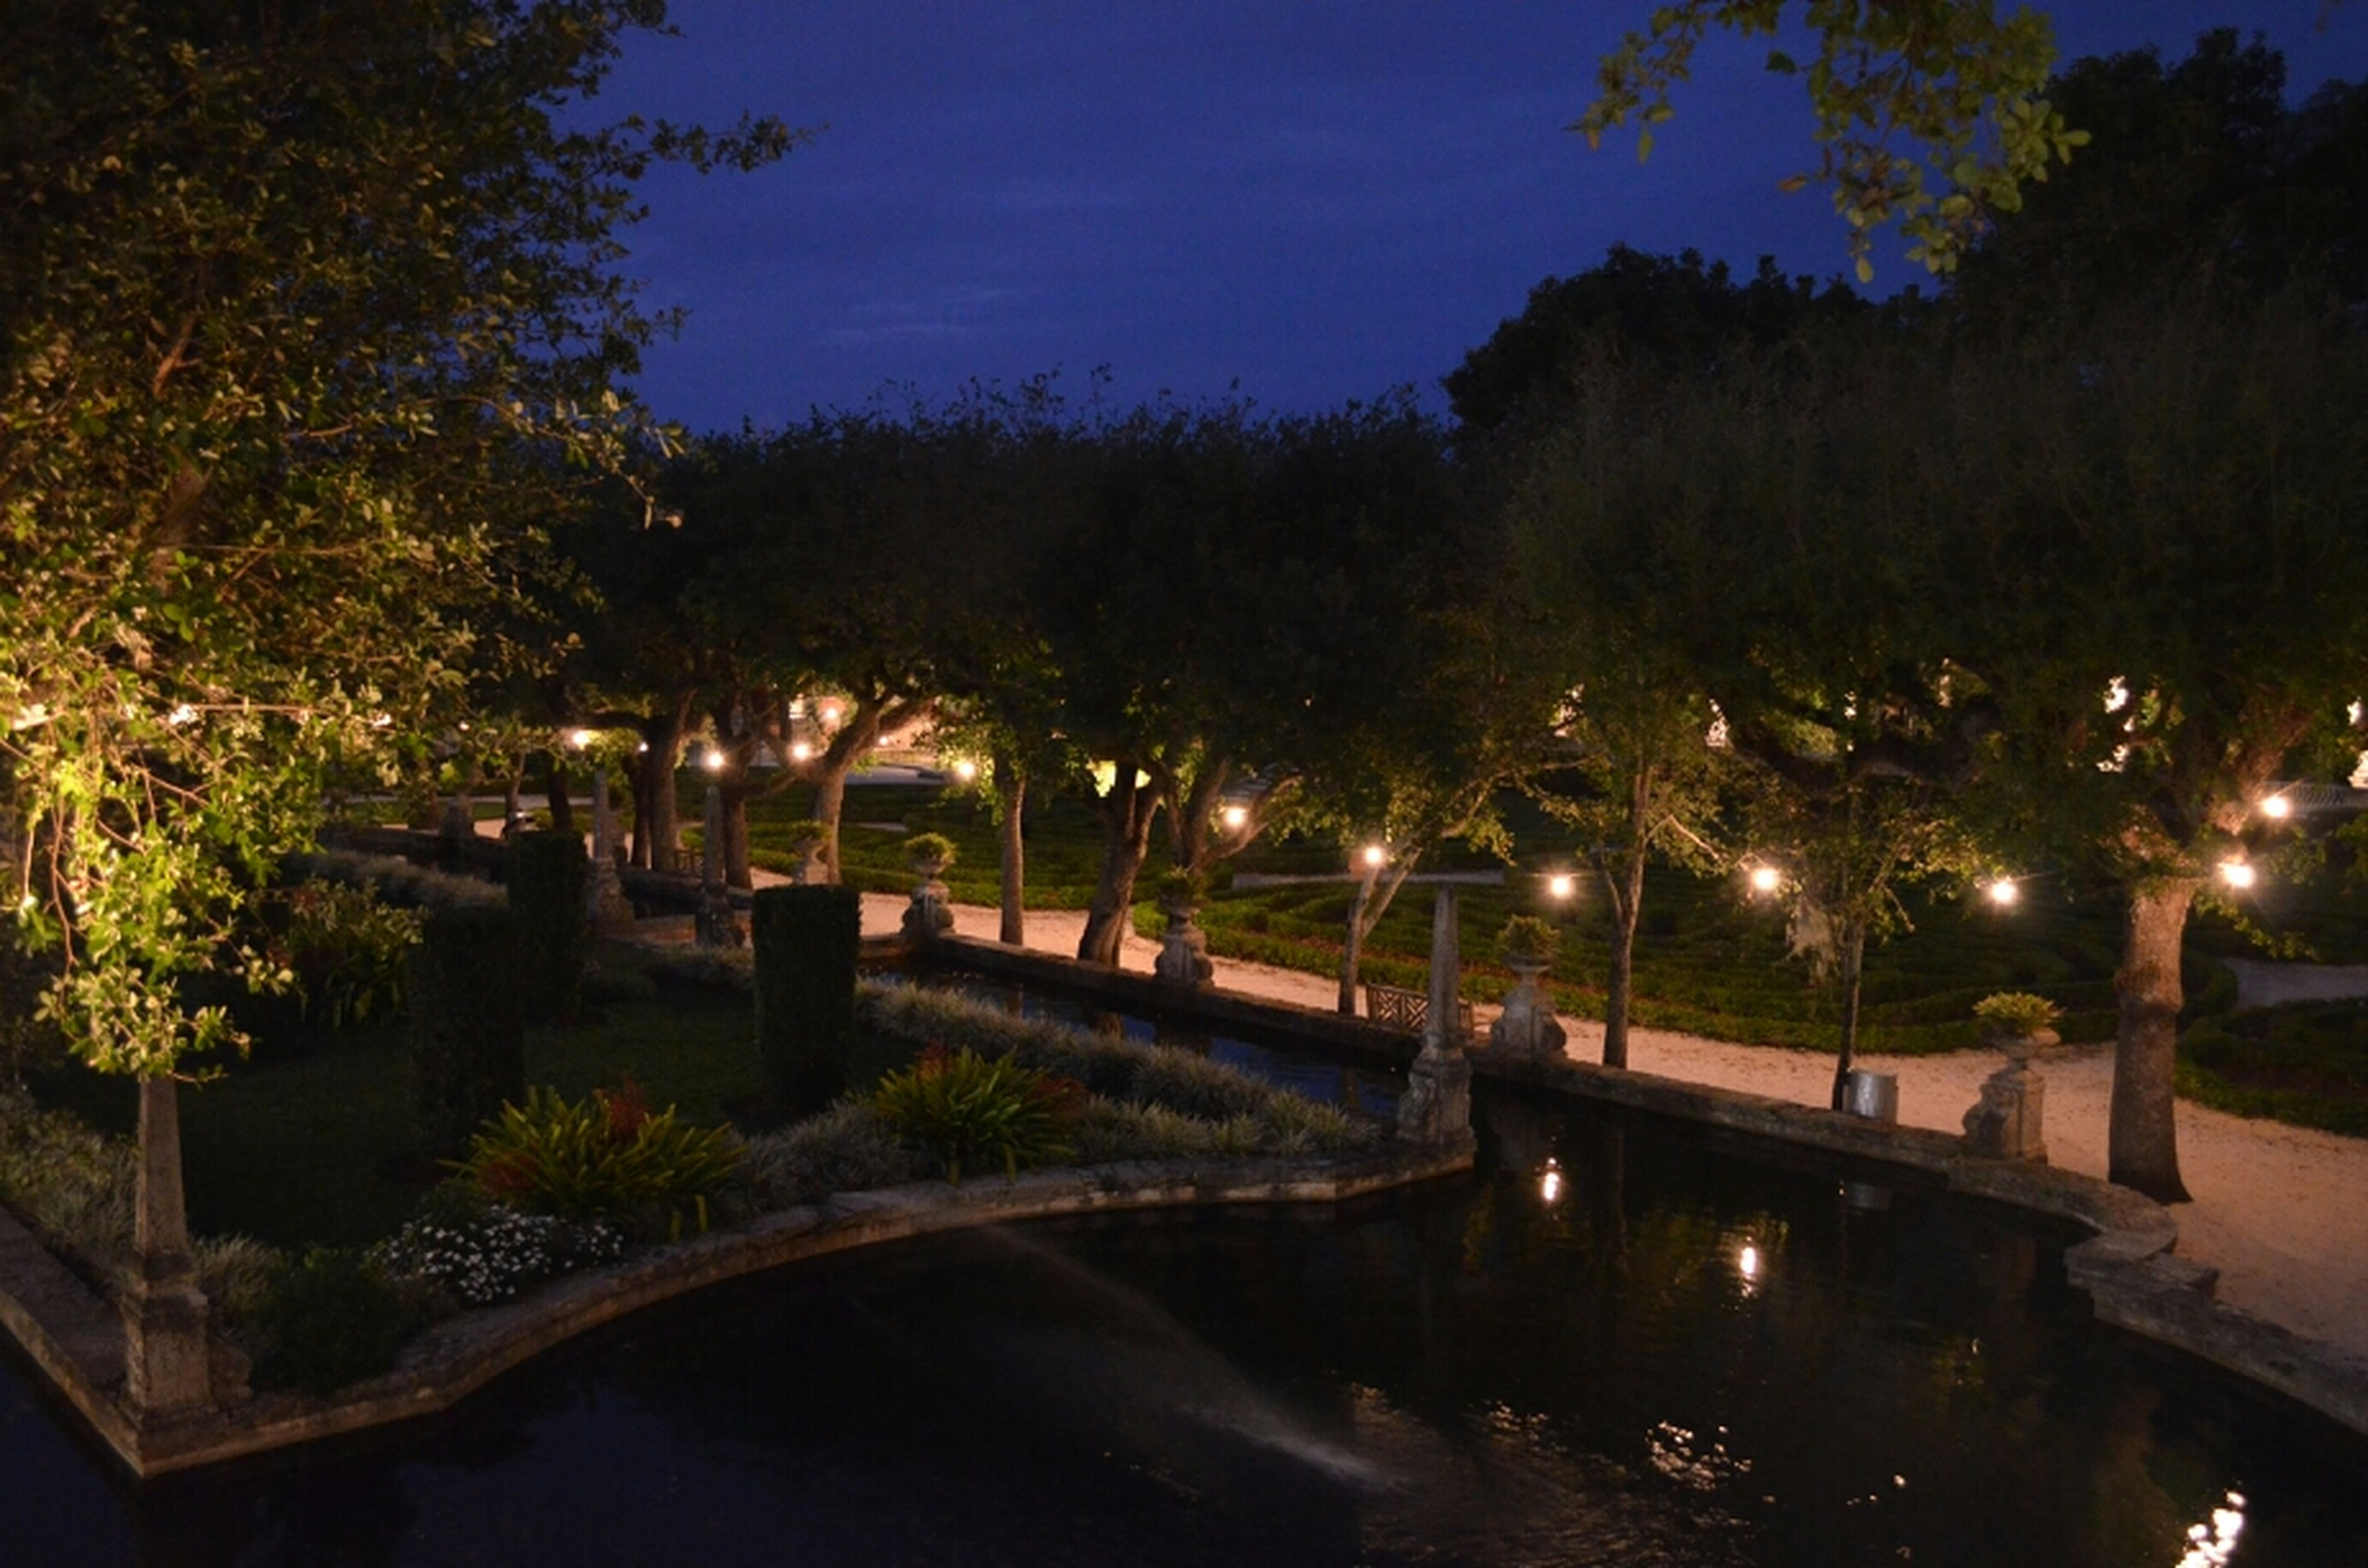 illuminated, water, tree, night, reflection, street light, river, tranquility, tranquil scene, sky, built structure, waterfront, nature, lighting equipment, scenics, beauty in nature, connection, bridge - man made structure, architecture, lake